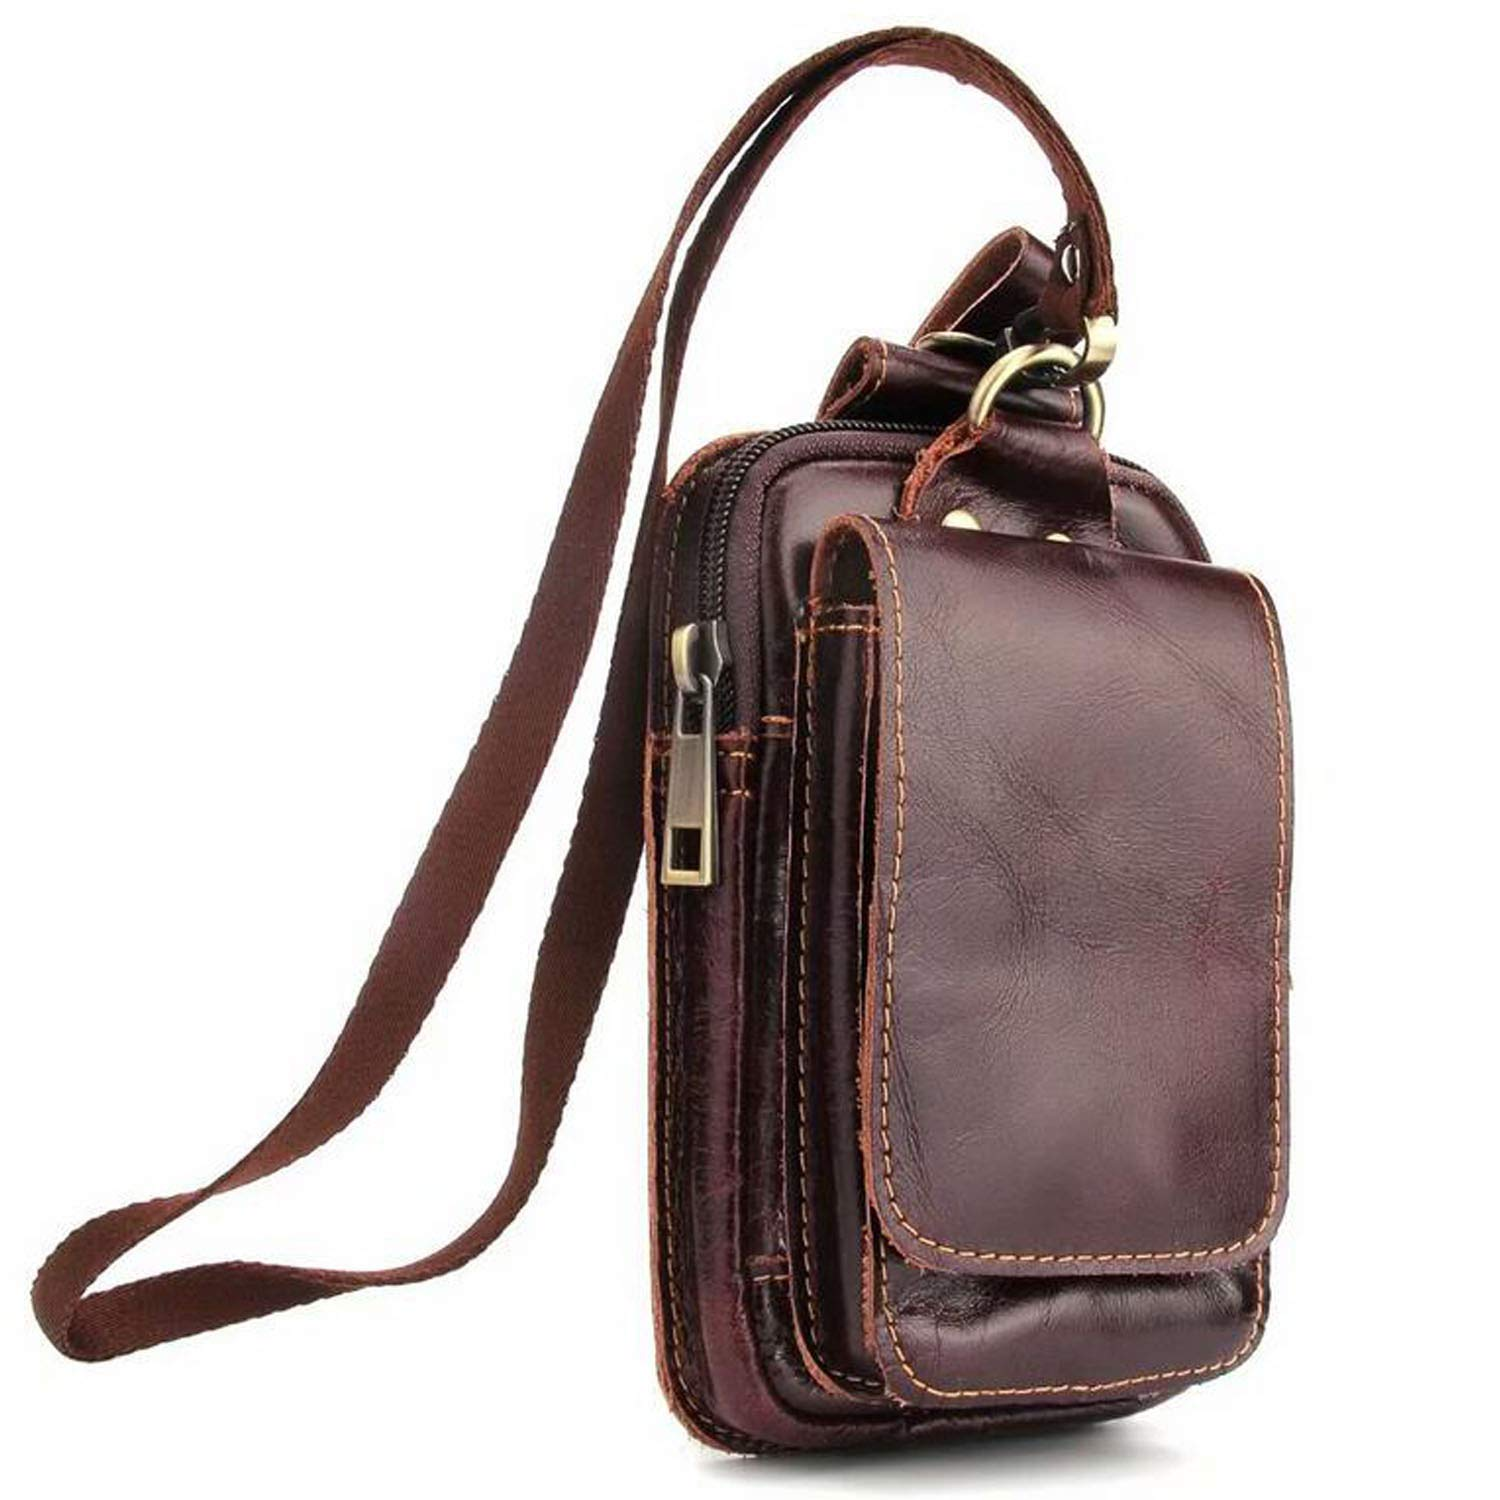 Genuine Leather Belt Wallet case Waist Bag Travel Messager Men Small Crossbody Messenger Phone Bag Compatible for iPhone/Samsung/Most Android Smartphones(Brown002)